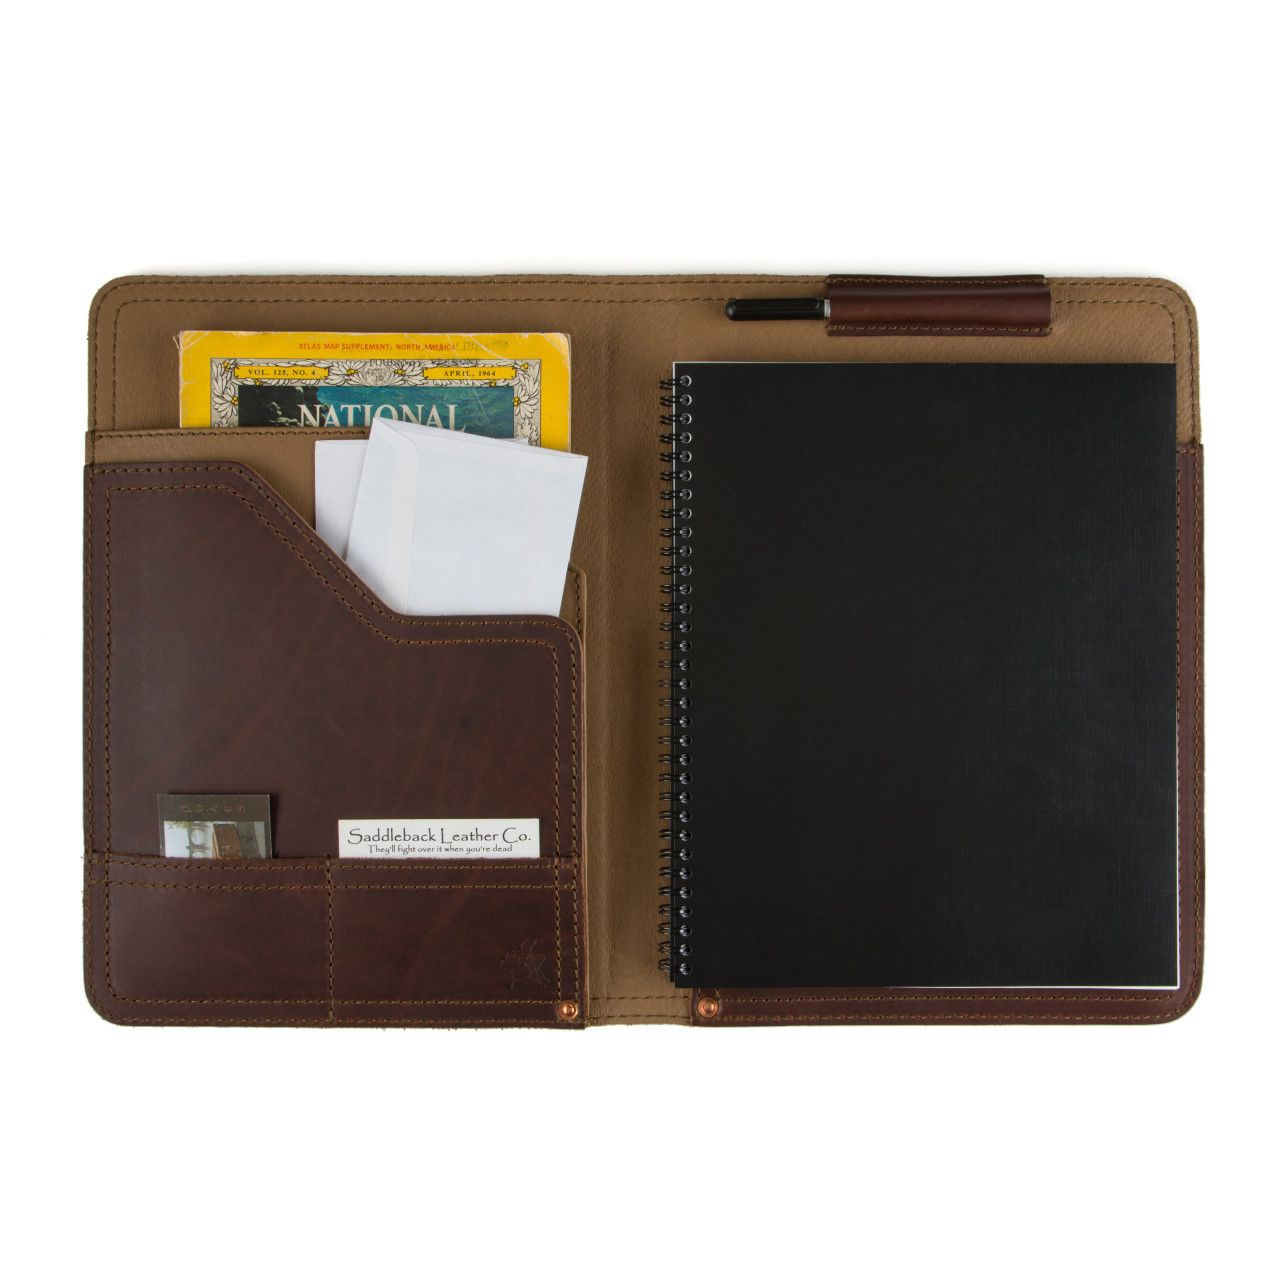 Notepad, business cards and map located in leather notepad cover medium in chestnut leather